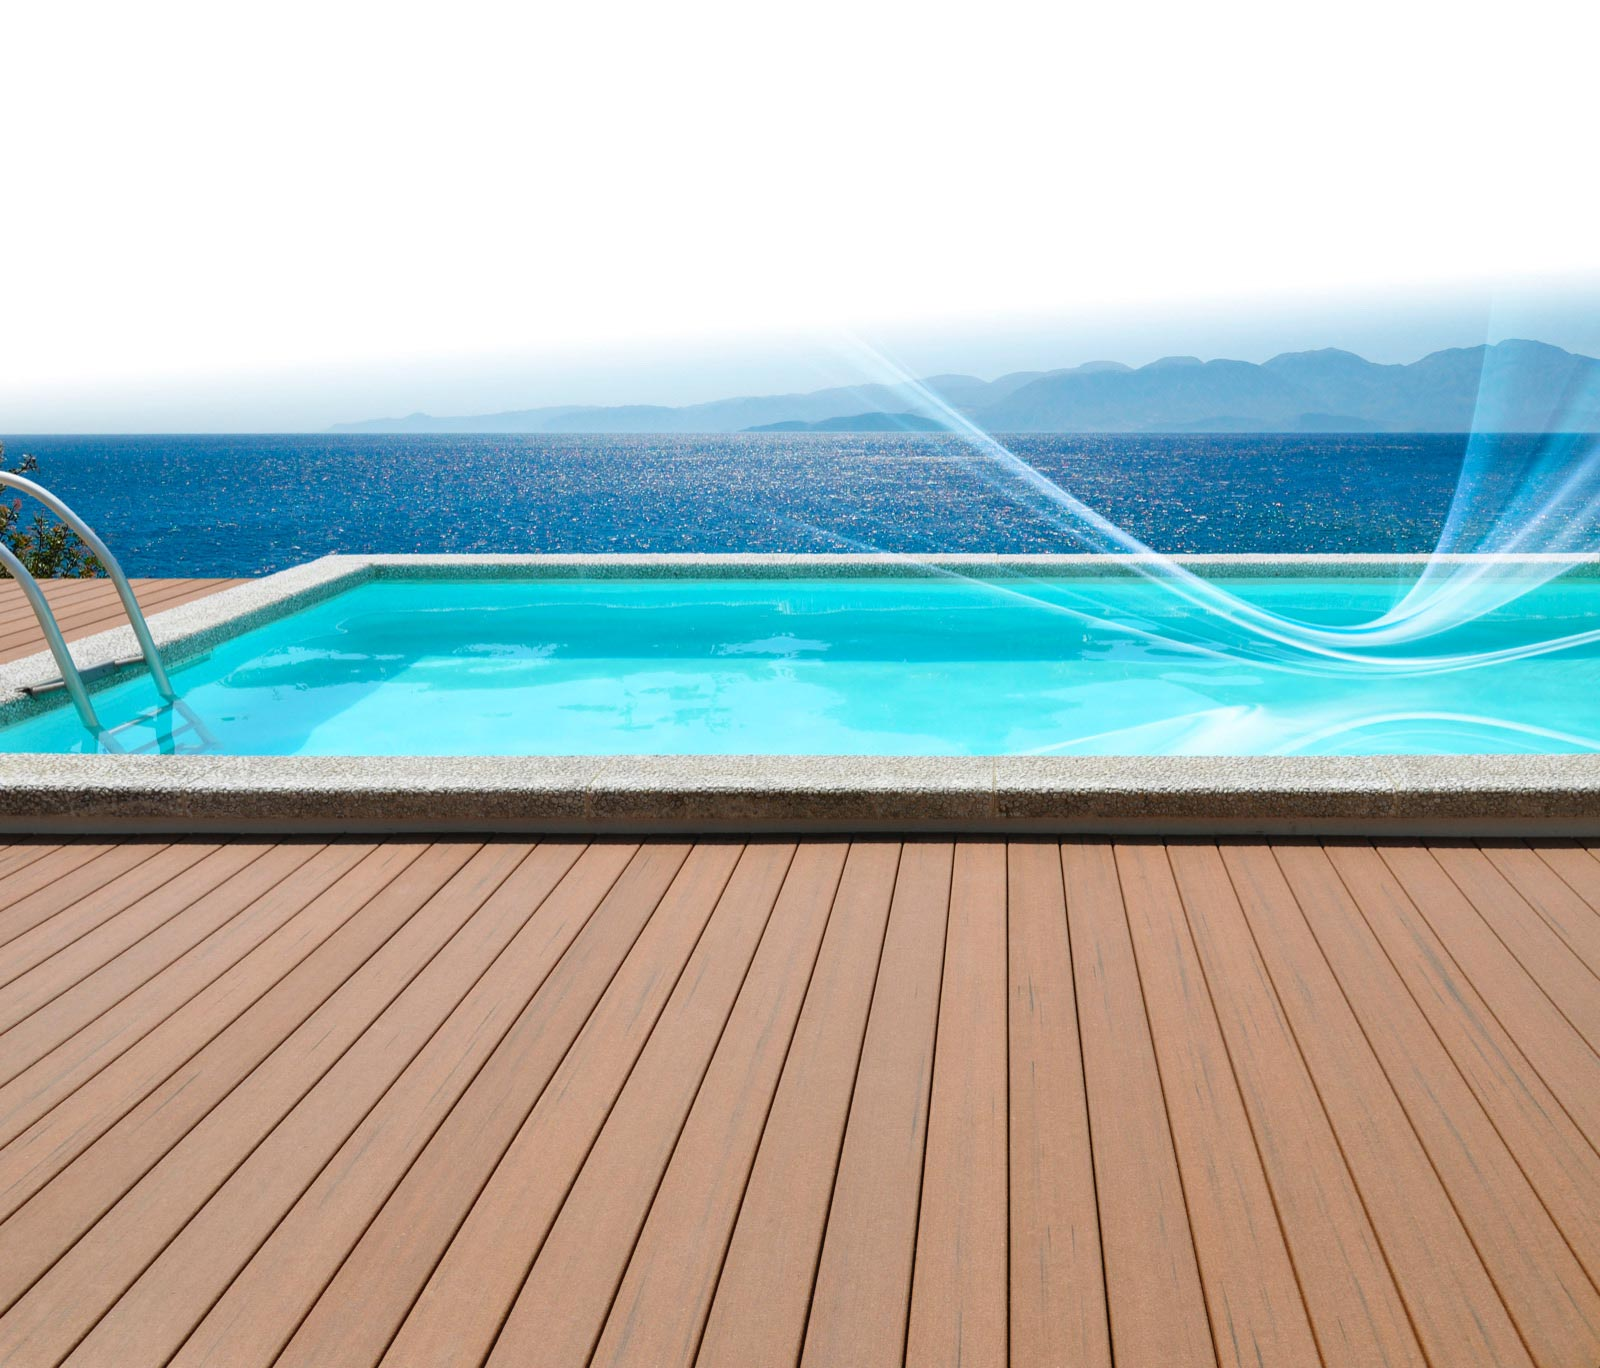 Pool with decking overlooking ocean